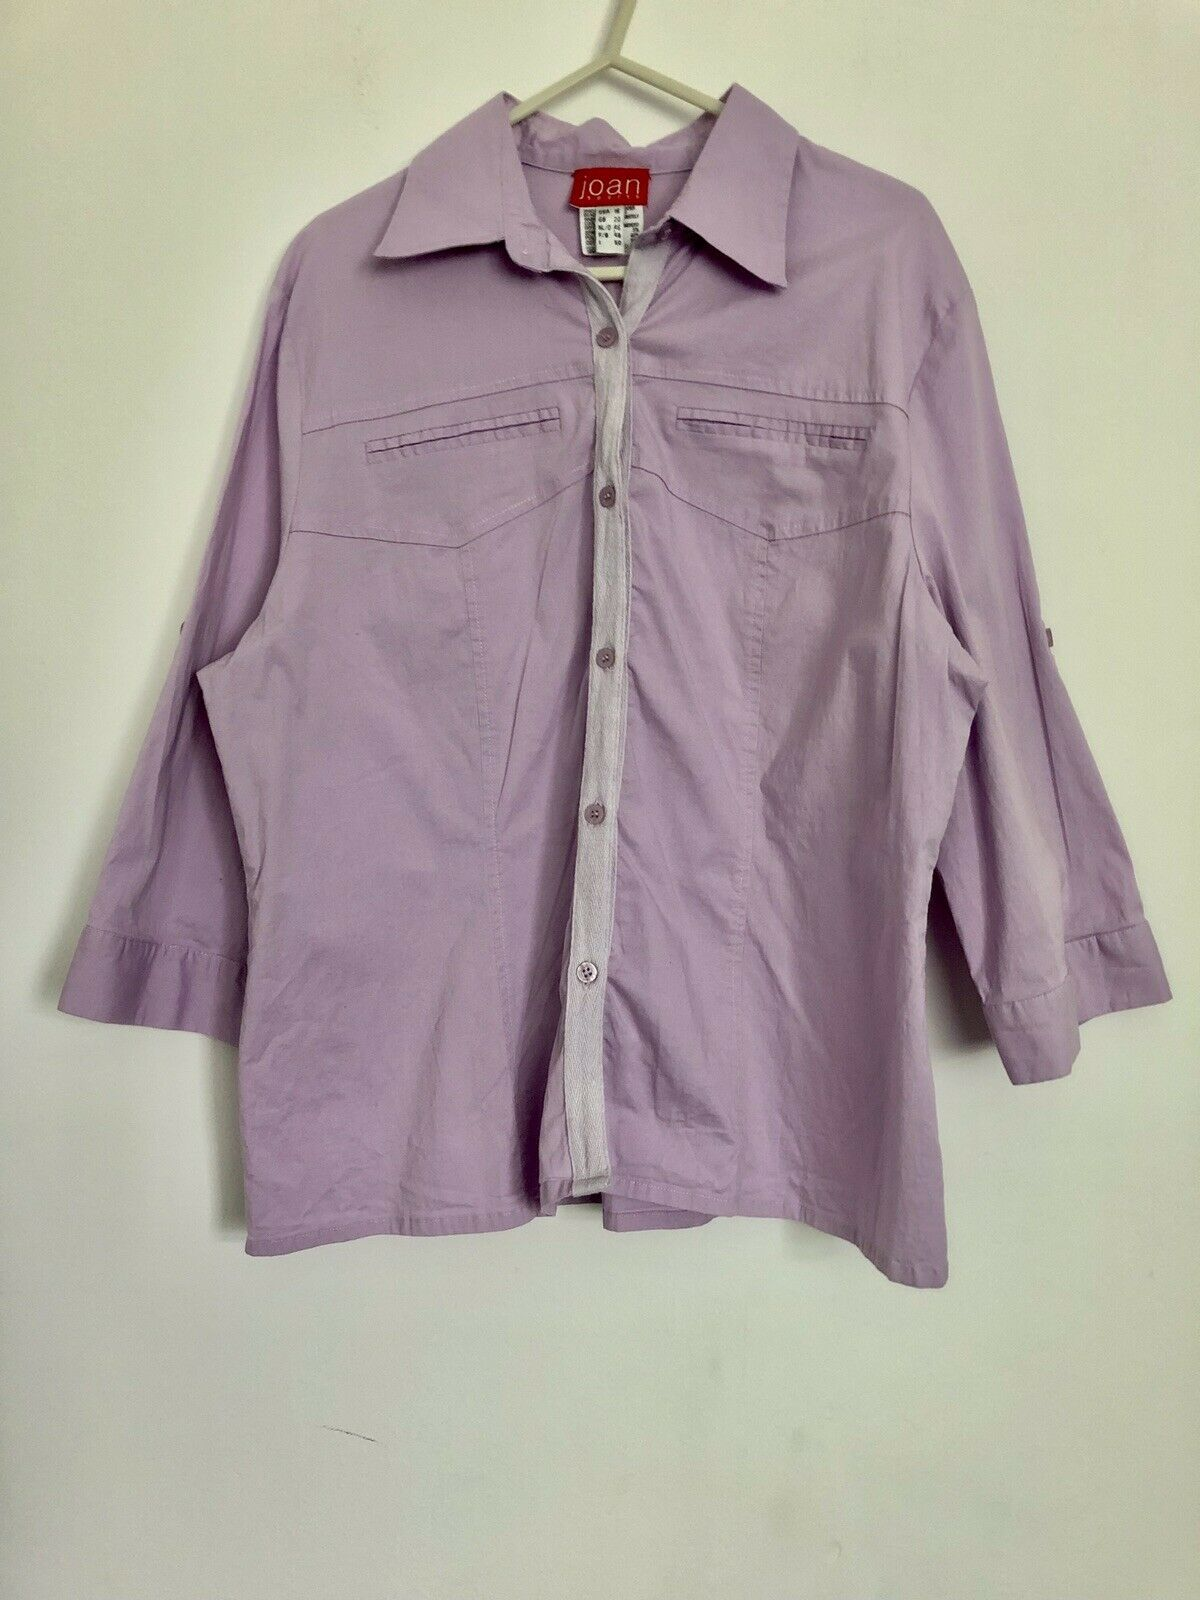 JOAN SPORT Lilac Purple Button Up Collared Shirt Outdoor Wear Size Medium/Large